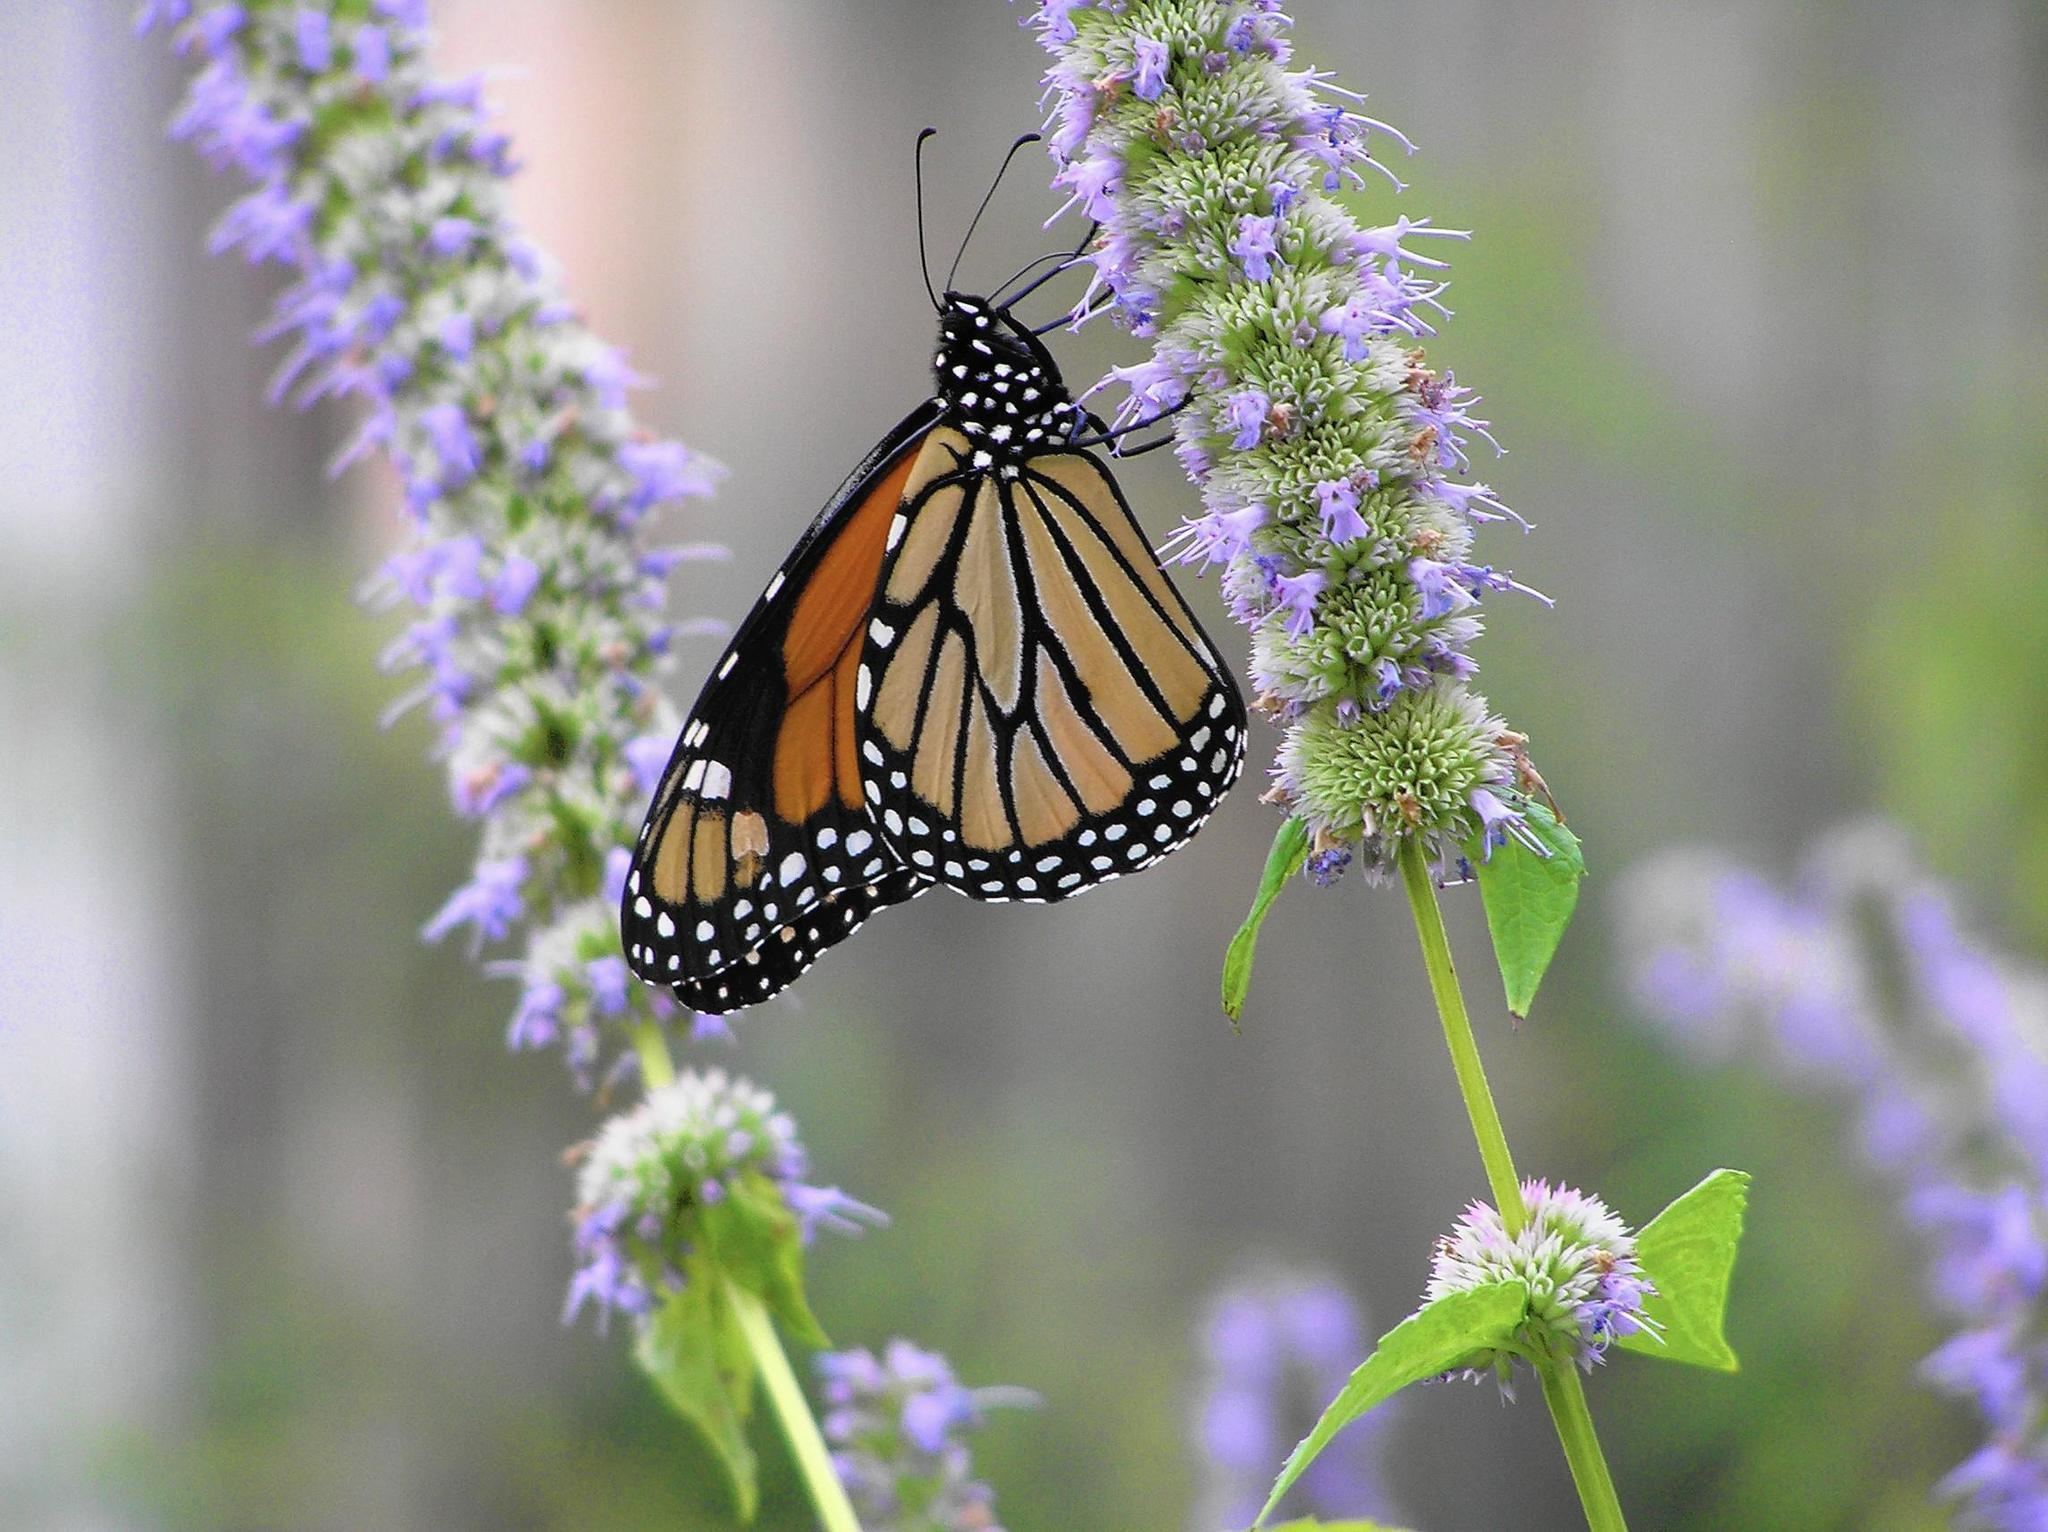 Make Your Yard Monarch Friendly As They Migrate Through Illinois   Chicago  Tribune